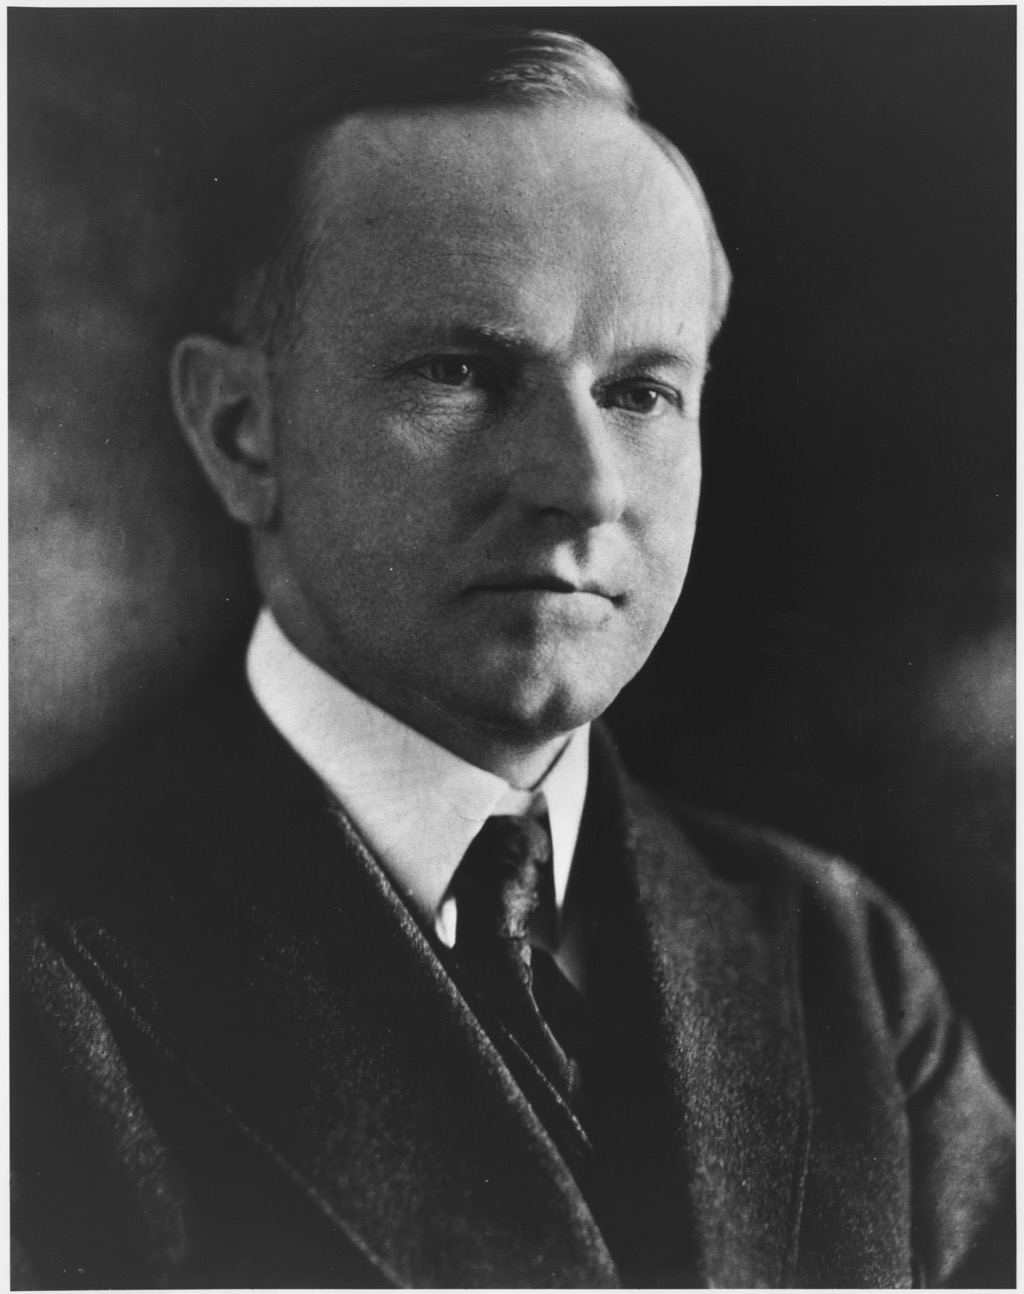 President Calvin Coolidge. Ca. 1923-1928. From 1907 to 1920, Coolidge worked his way up Massachusetts State politics to election as Governor in 1918.